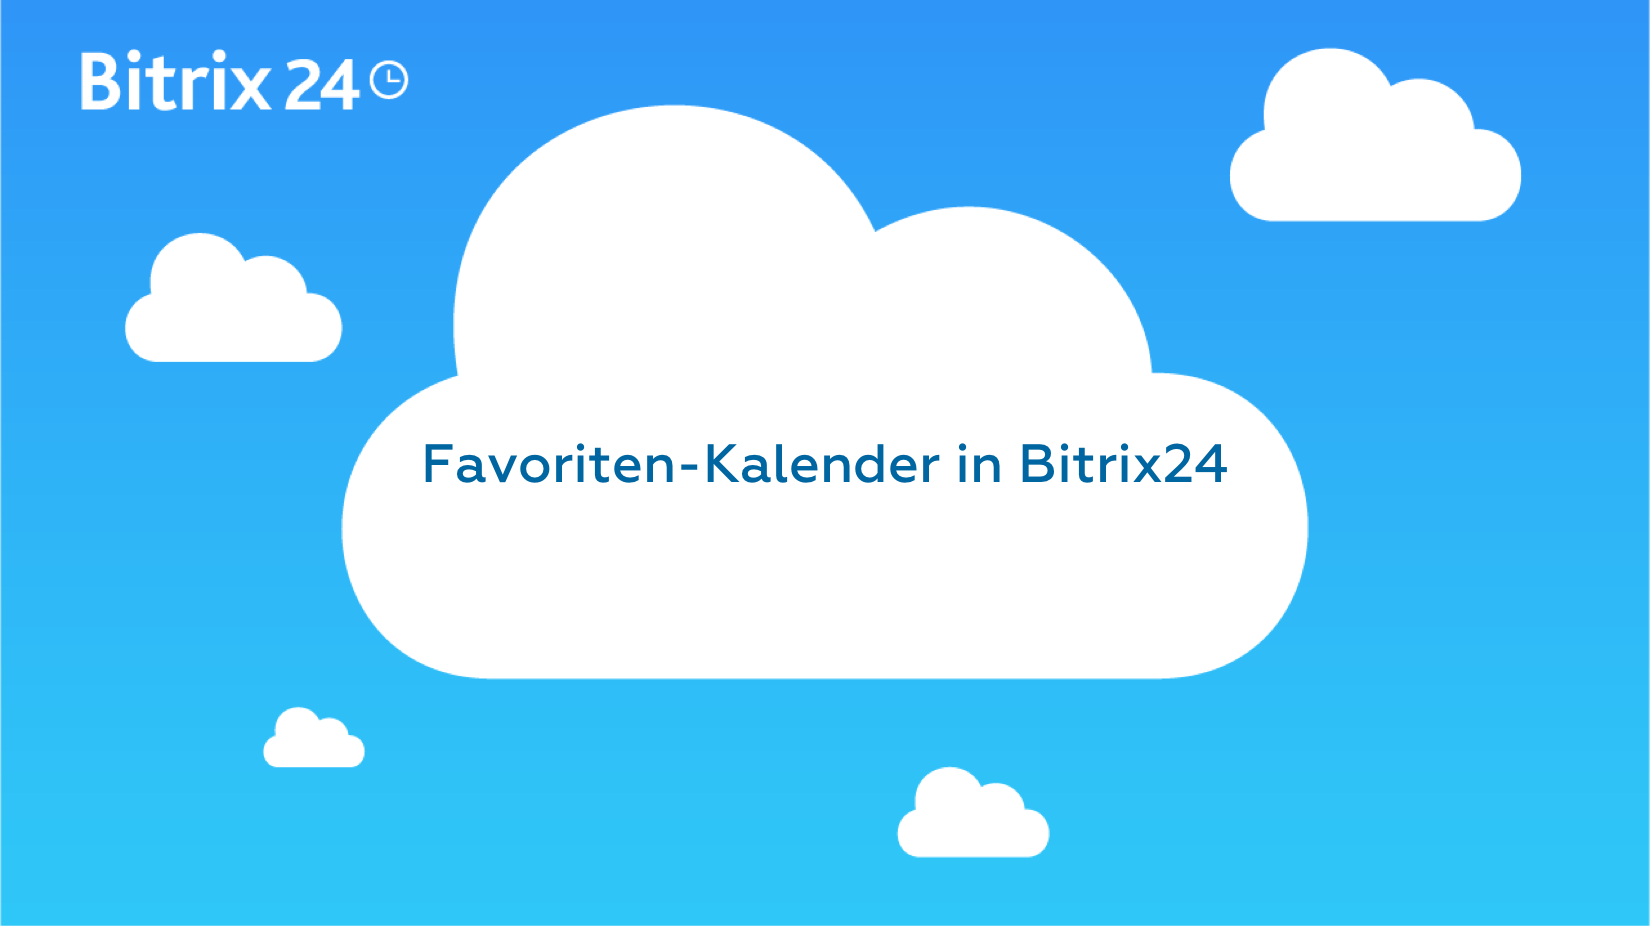 Favoriten-Kalender in Bitrix24